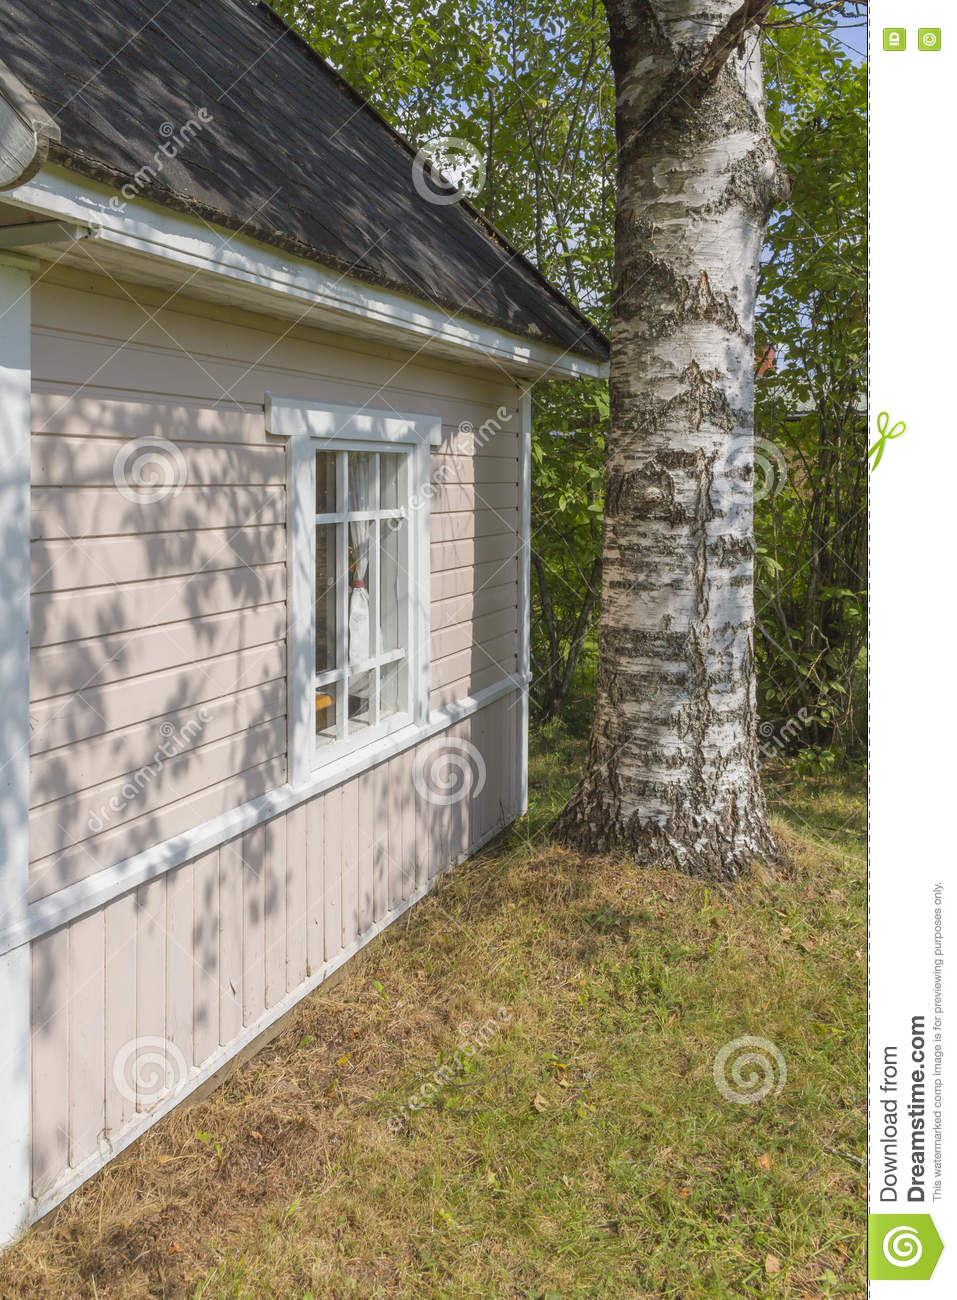 Childrens Playhouse Stock Photo Image Of Playing House 74887832